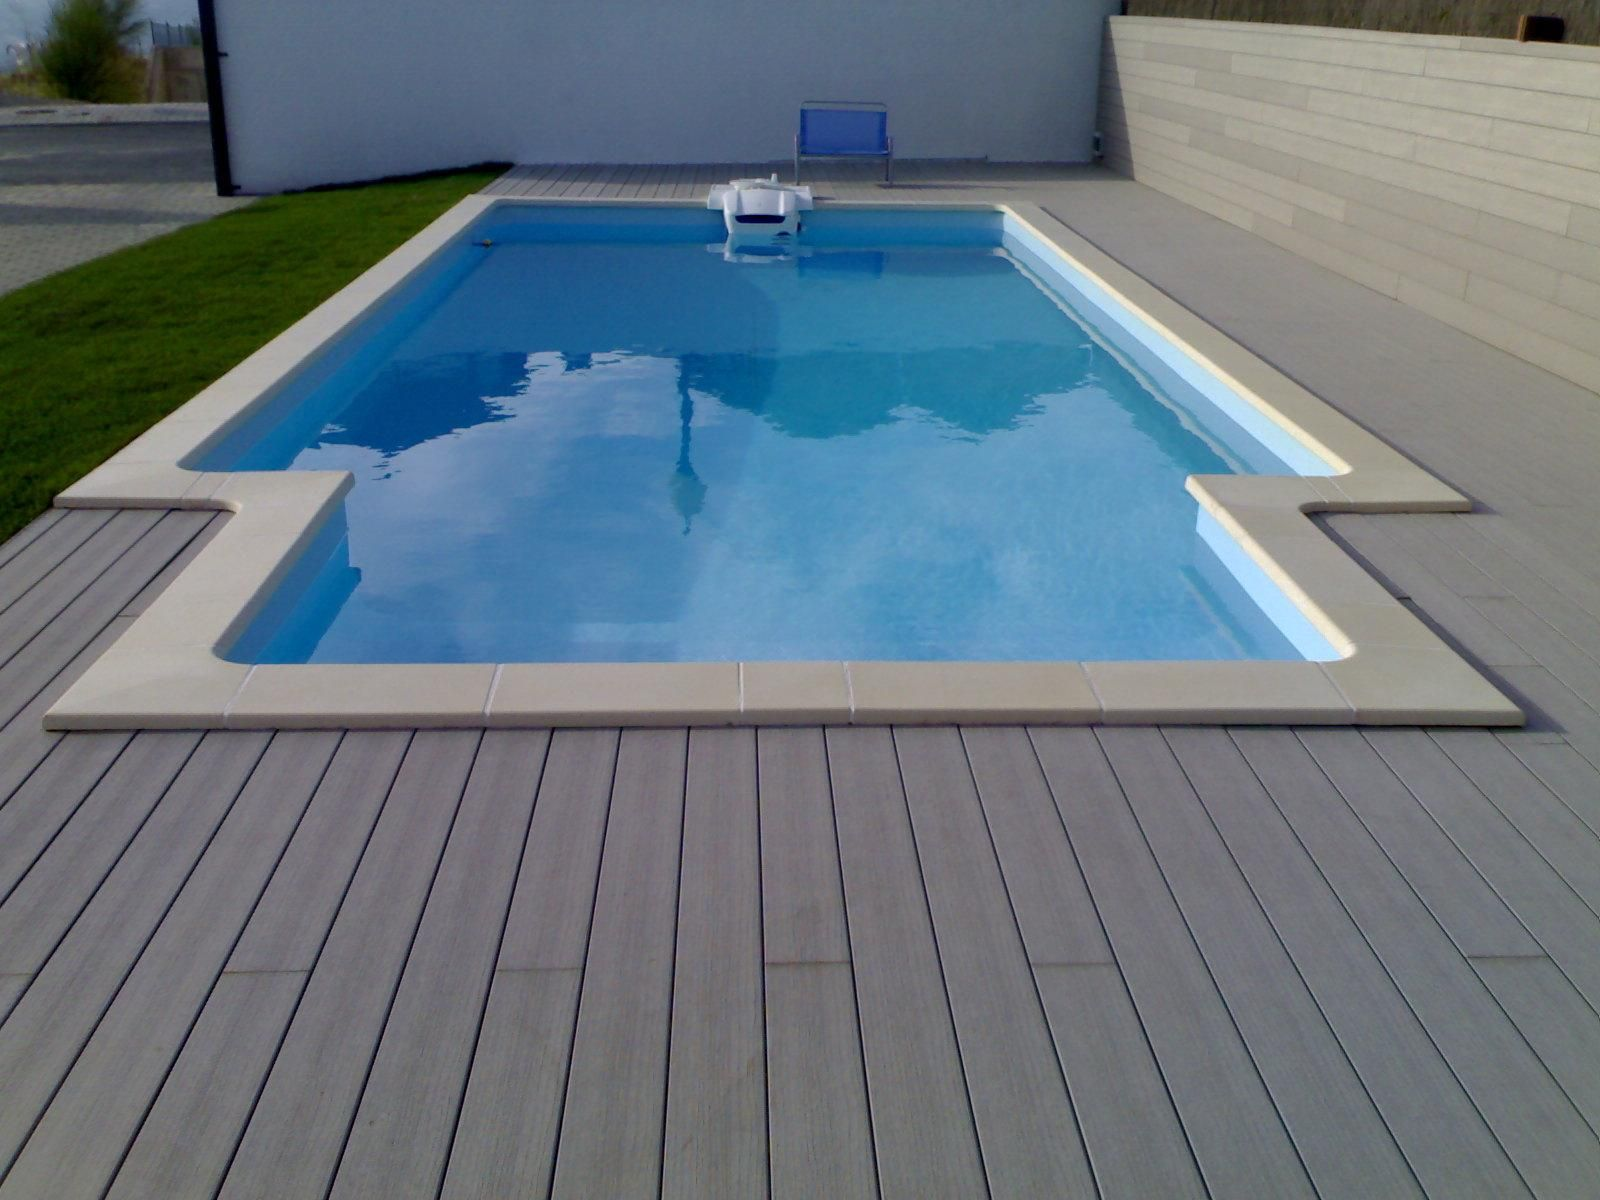 Wood Plastic Composite Project Case Pool Deck Floor Swimming Pools Outdoor Flooring